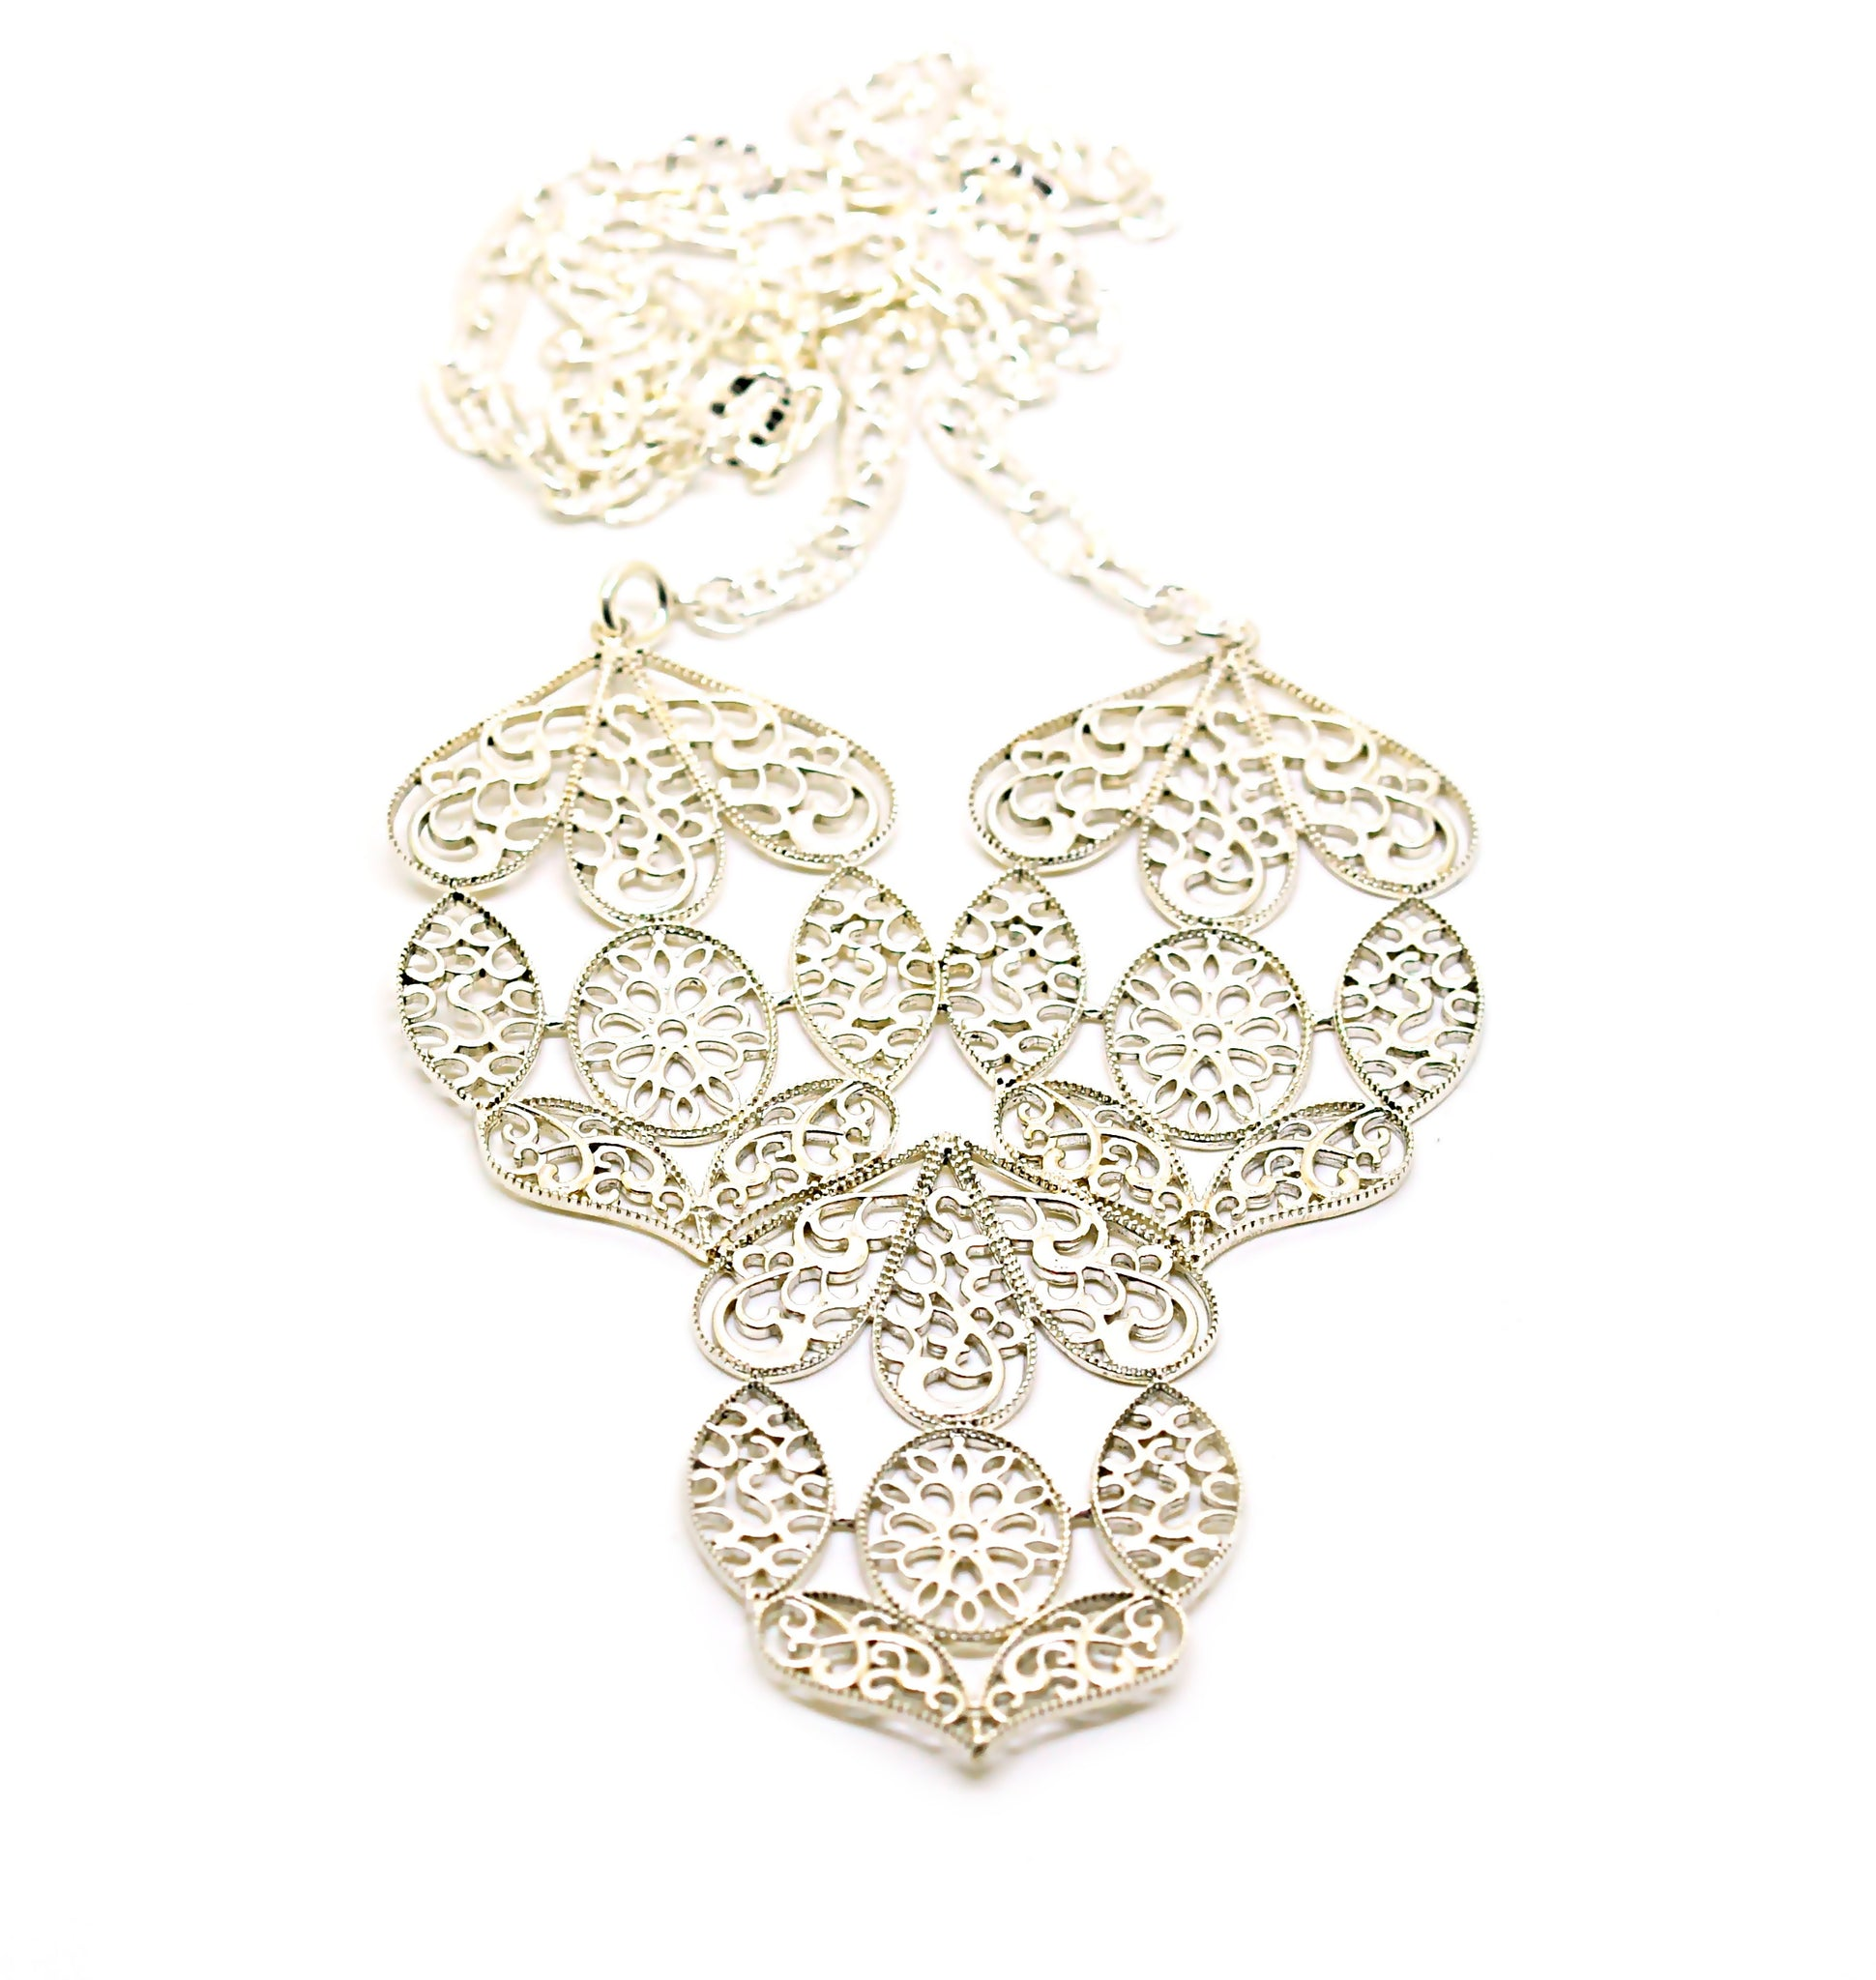 ON SALE Large filigree necklace